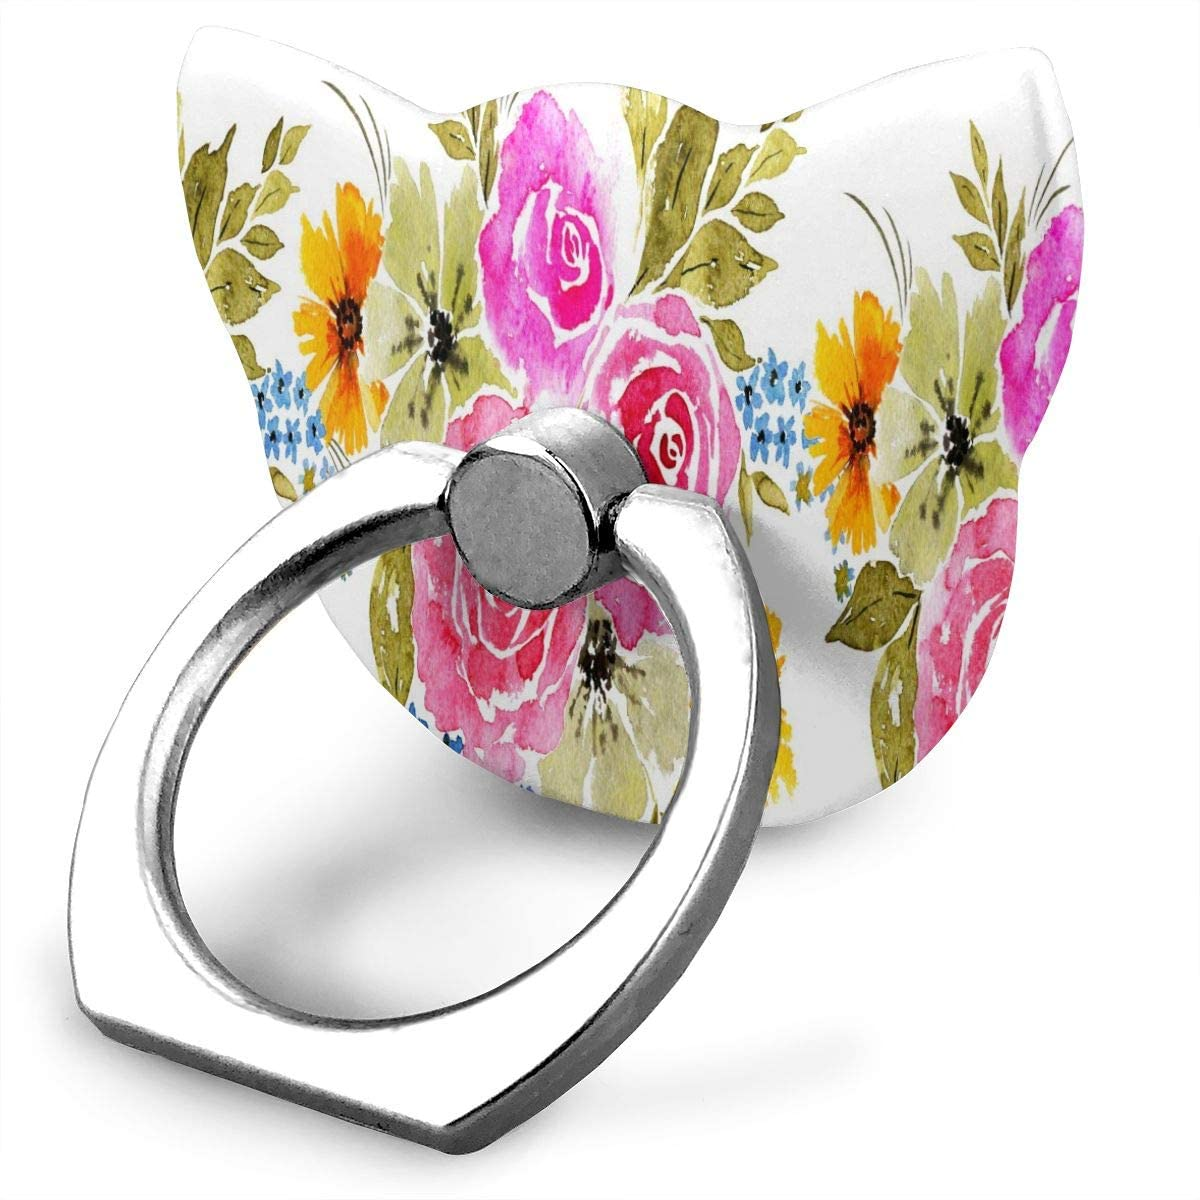 Cell Phone Ring Holder Stand Magnificent Bright Soft Flowers,Leaves Grass, Painted With Love Adjustable Cat Shape Universal Finger Grip Loop with Silver Metal Phone Holder for Women Kids Men Ladies Sm